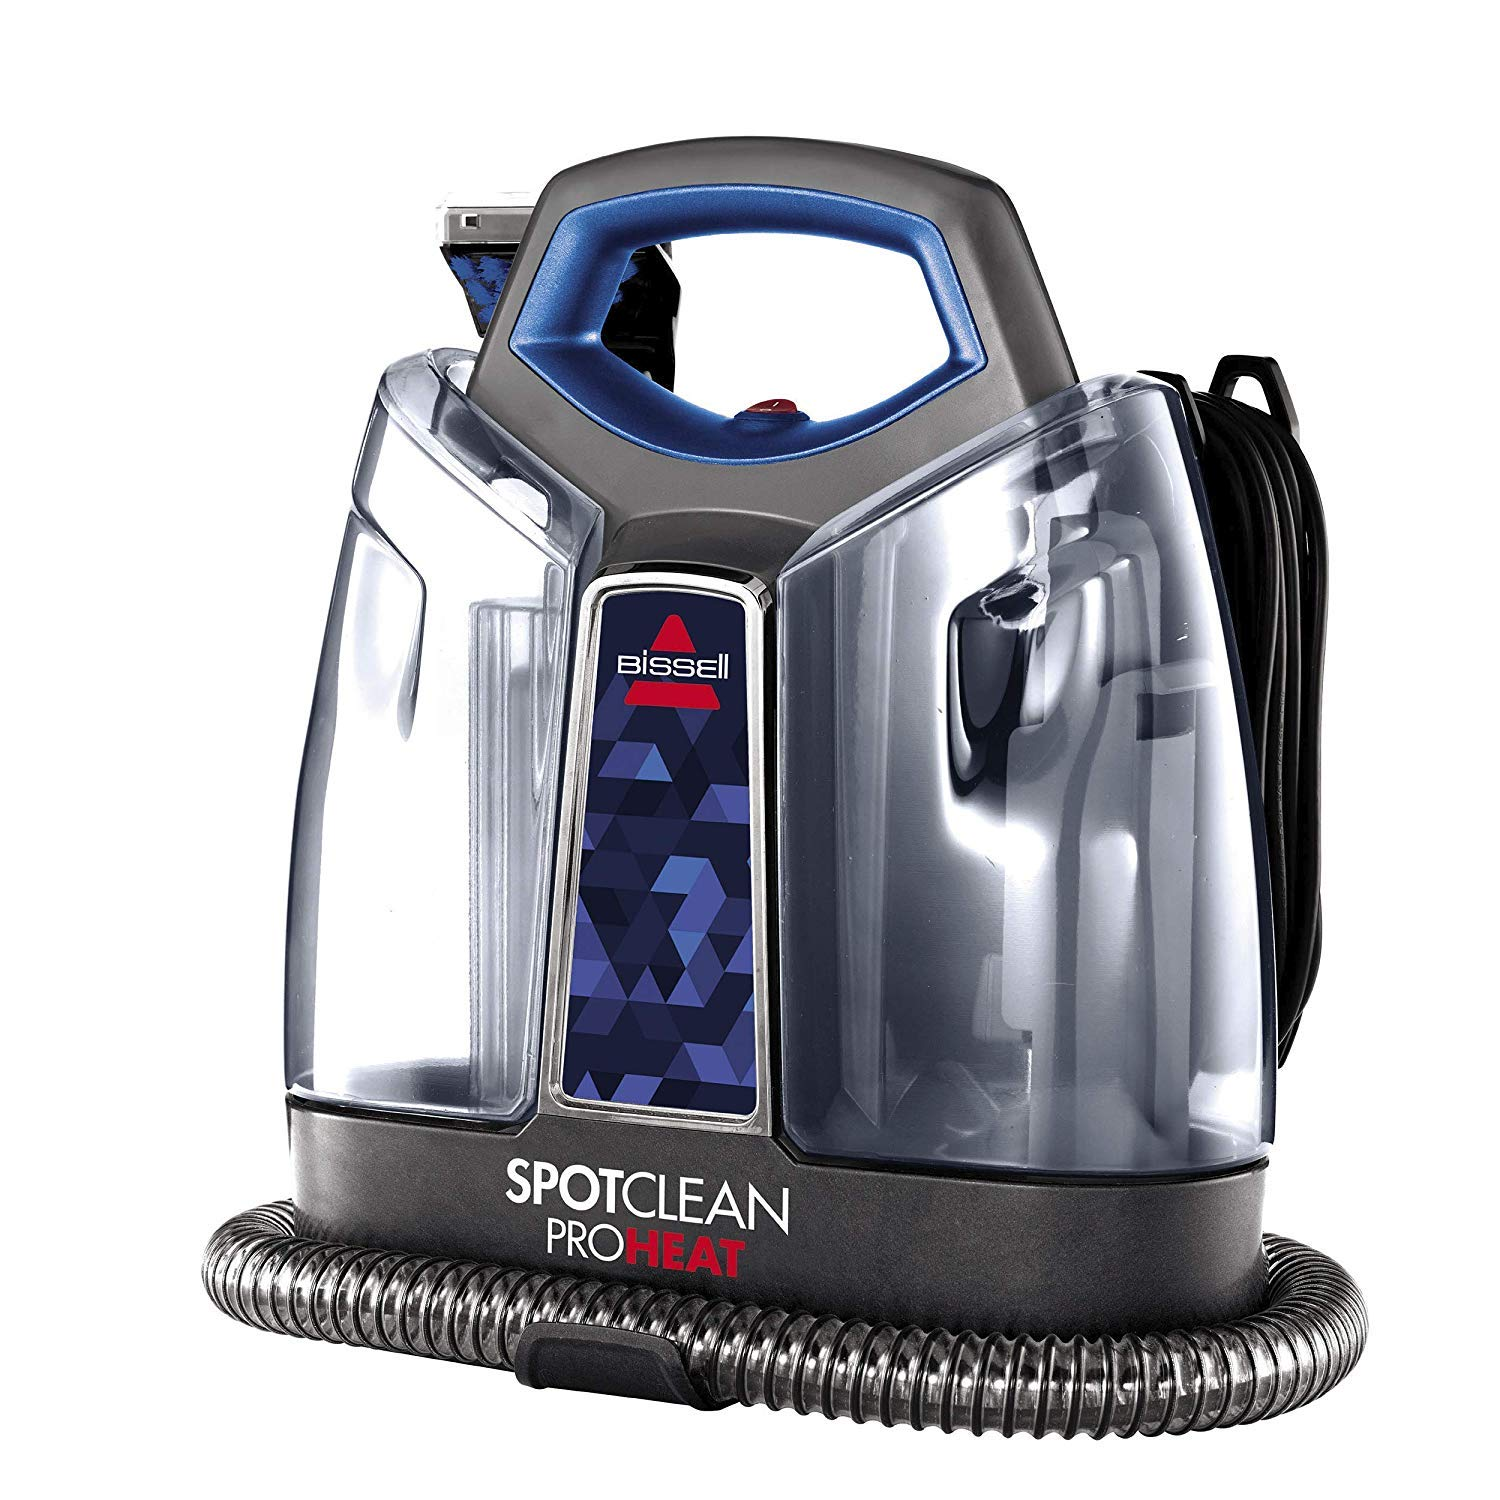 BISSELL SpotClean ProHeat Portable Spot and Stain Carpet Cleaner, 2694, COLOR MAY VARY (Renewed) by Bissell